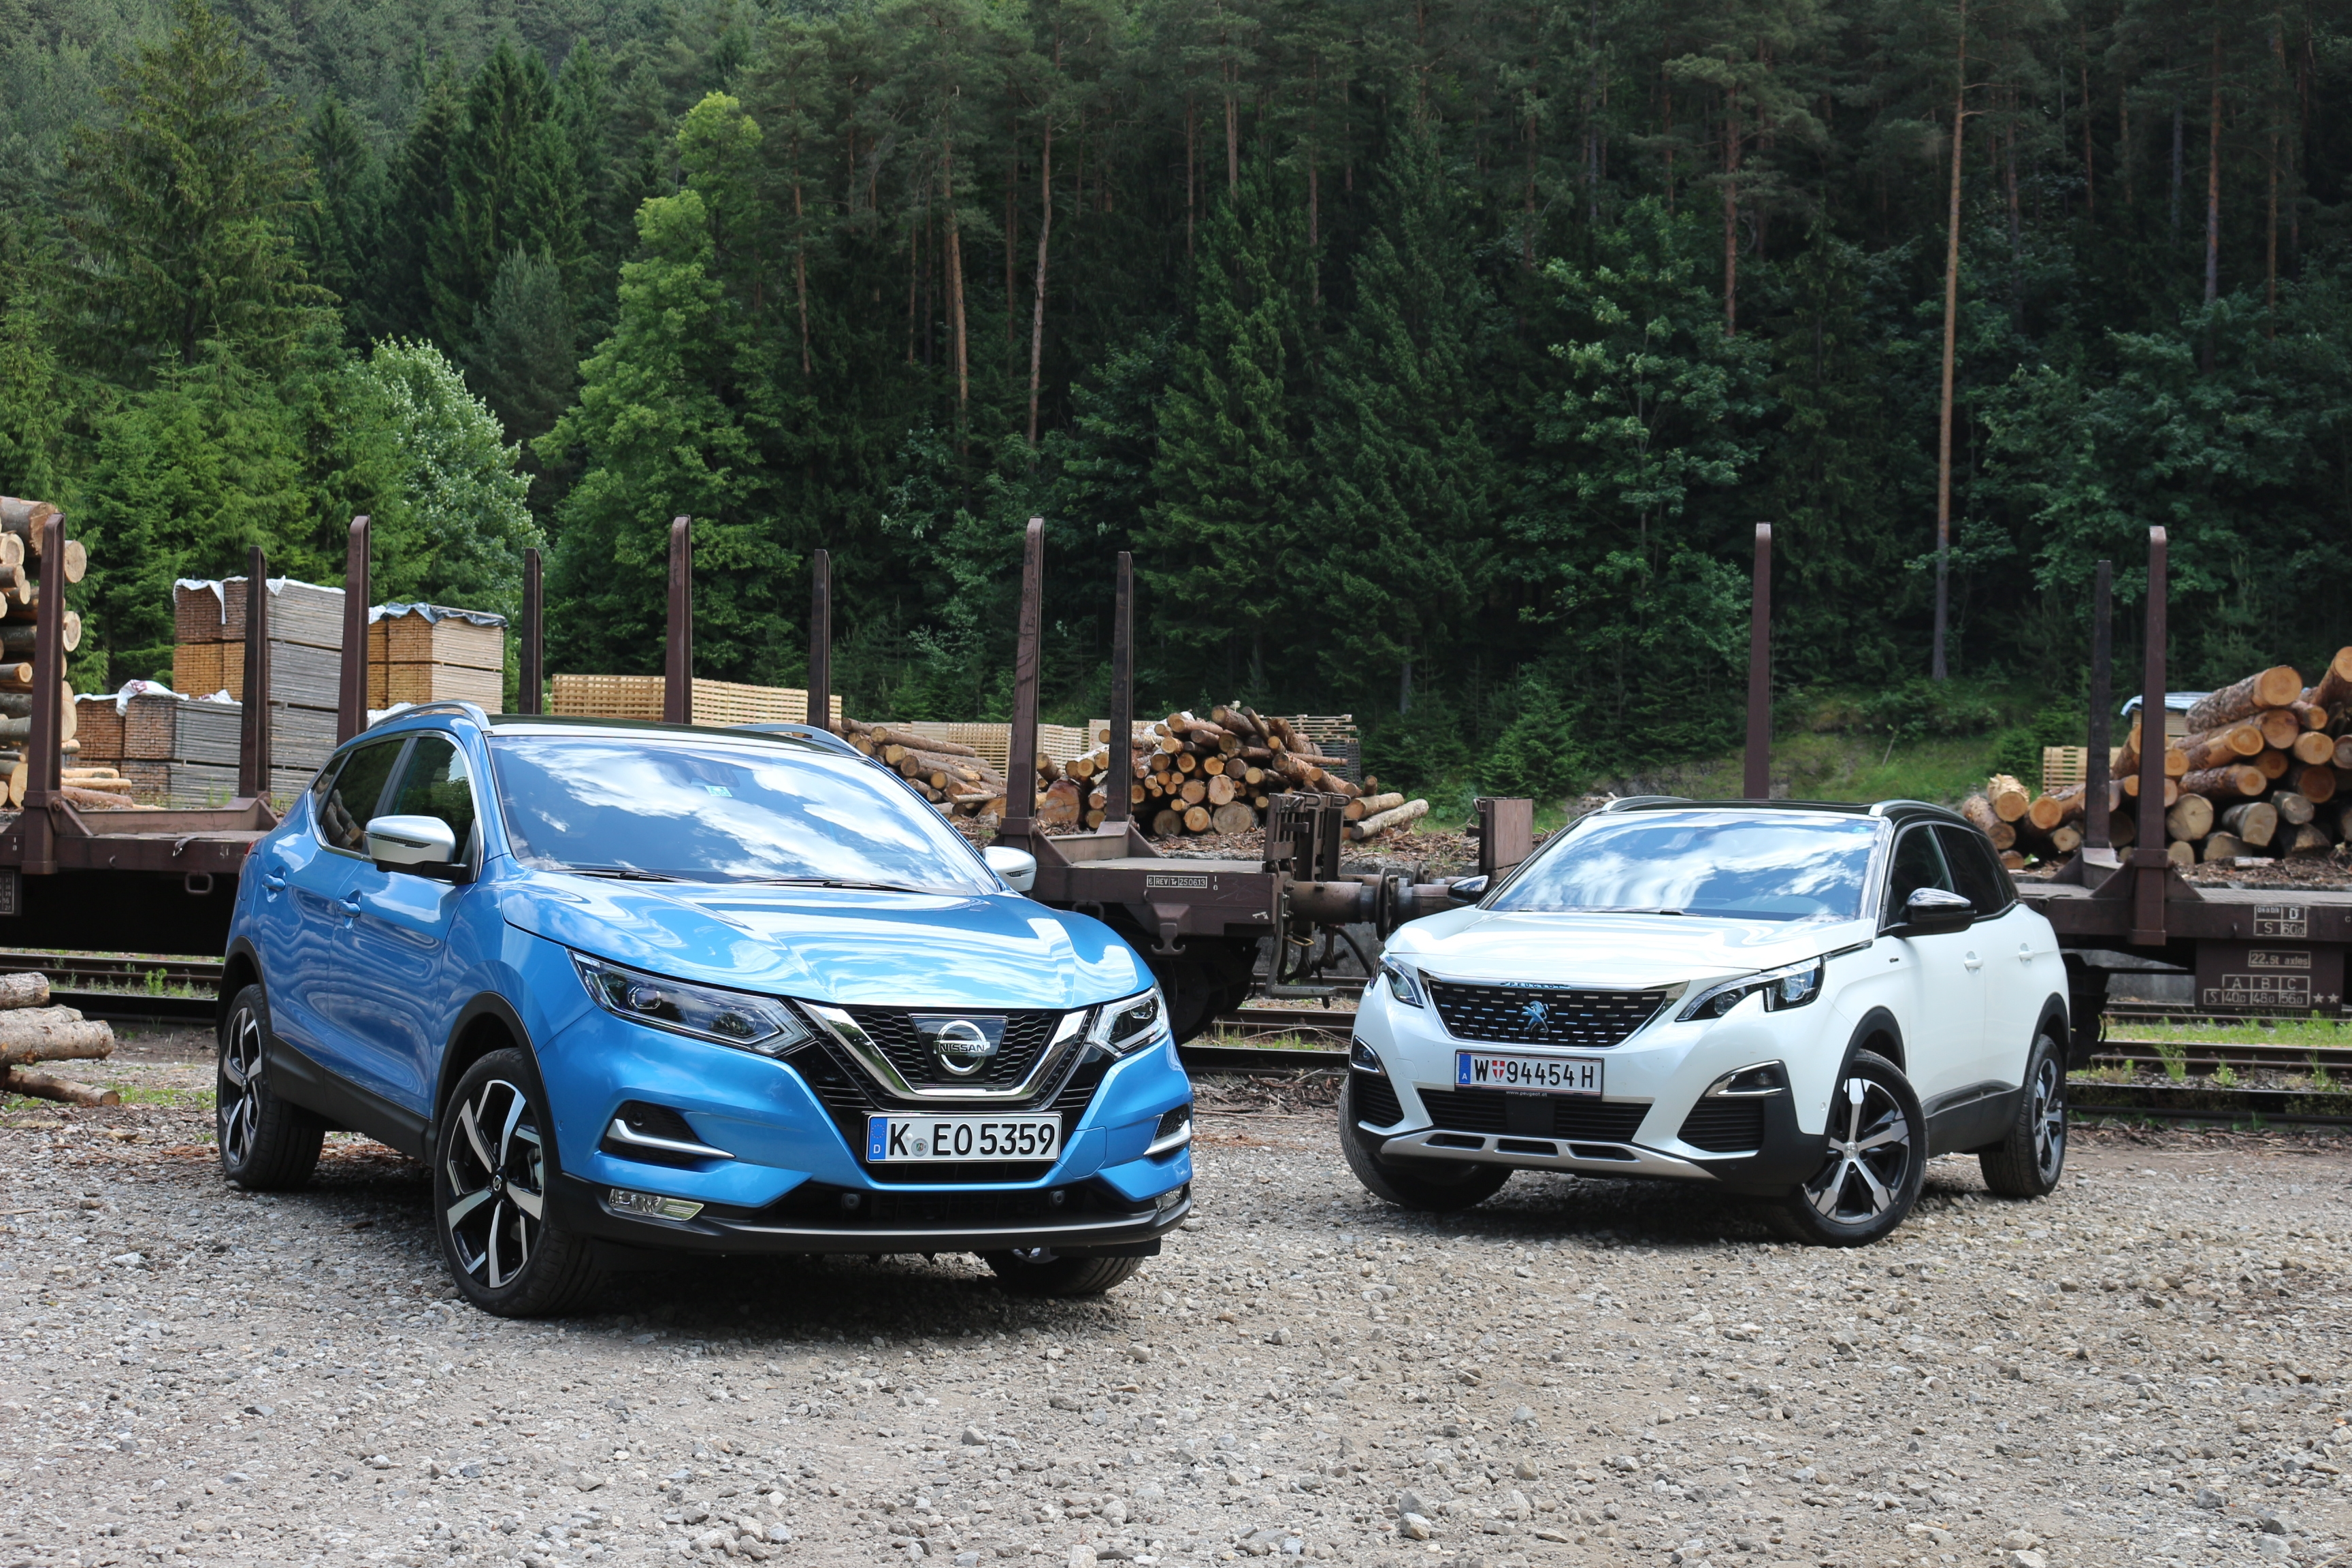 comparatif vid o nissan qashqai vs peugeot 3008 lutte pour un continent. Black Bedroom Furniture Sets. Home Design Ideas